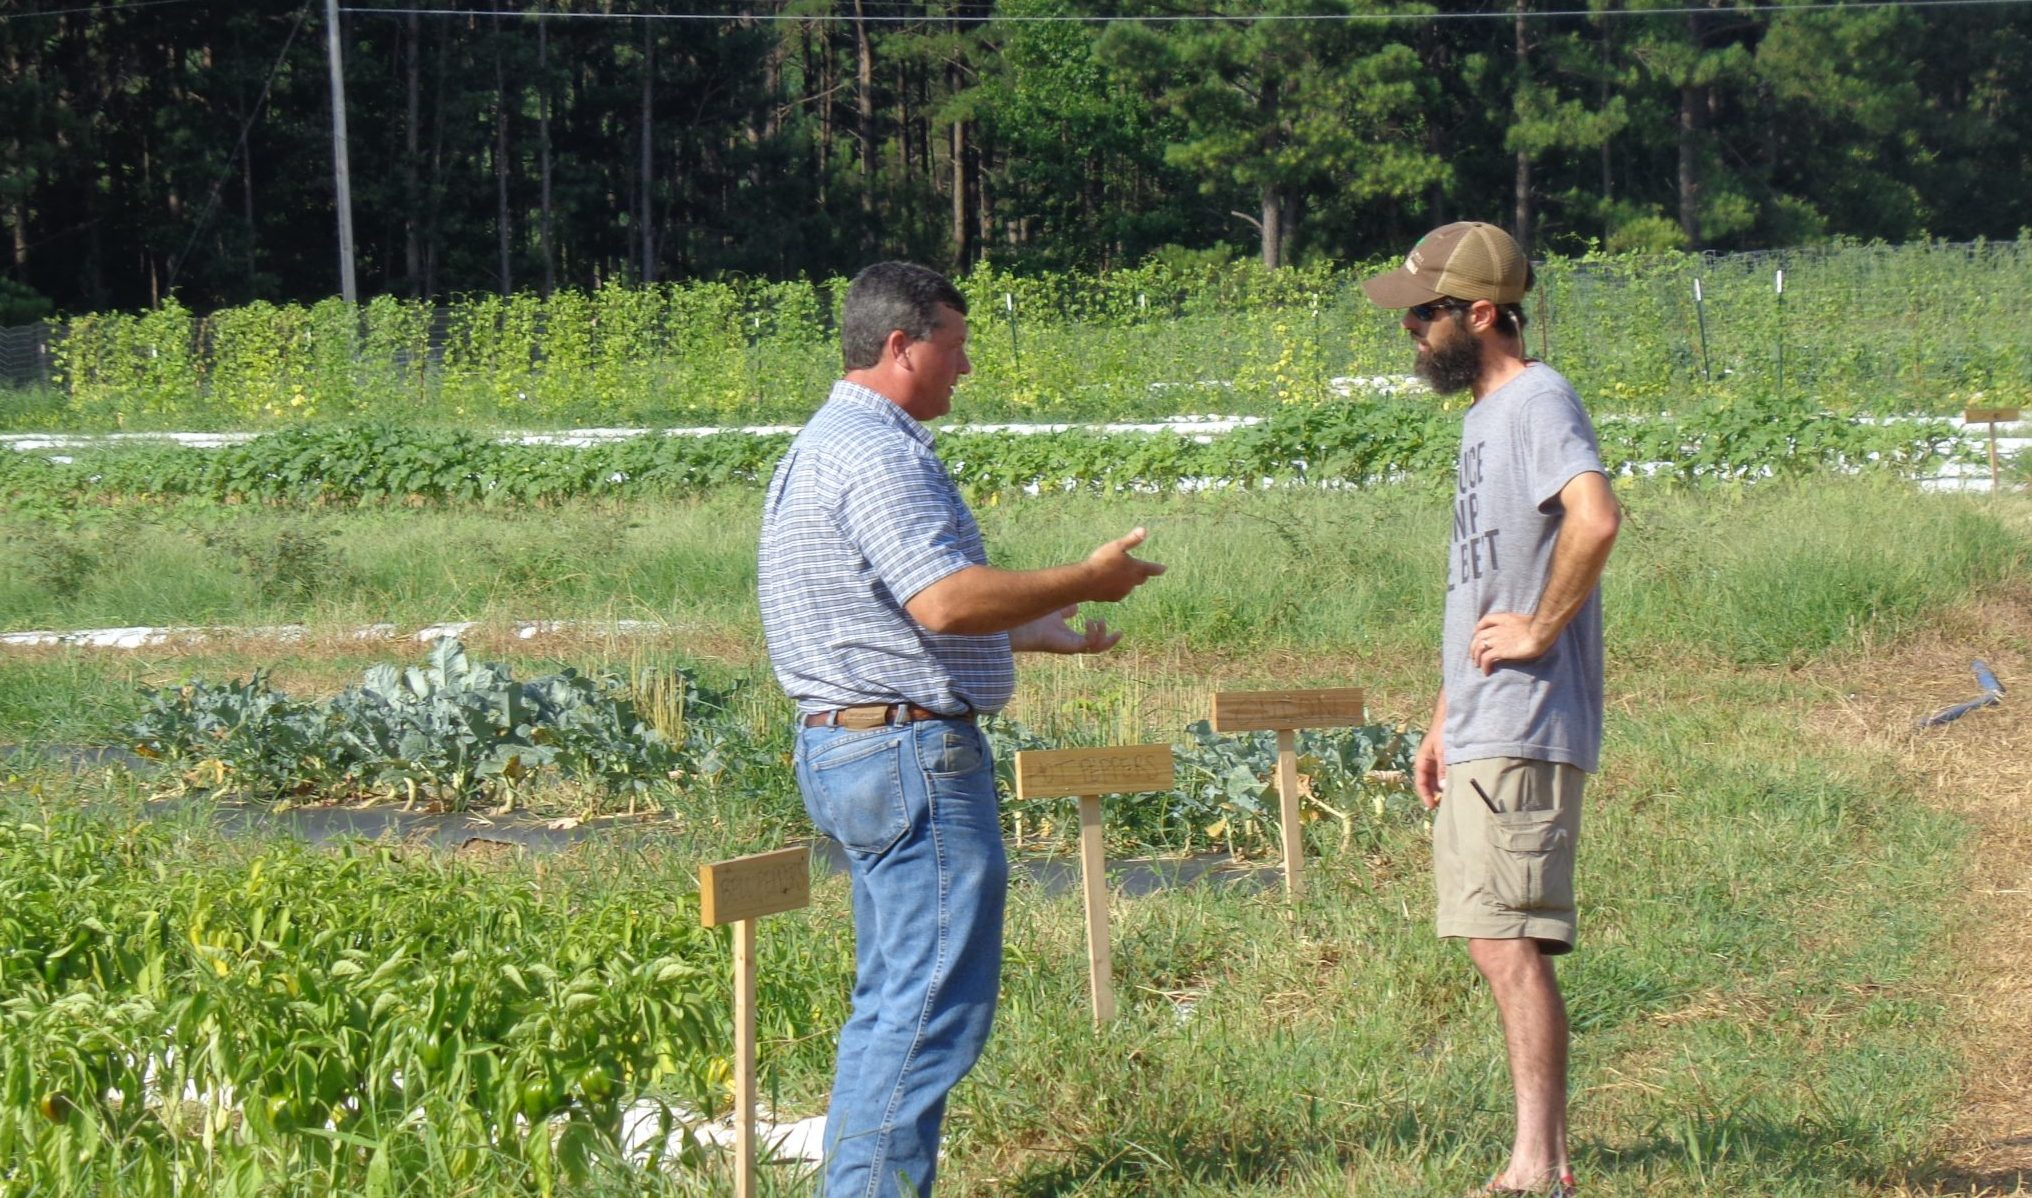 Regional Extension Agent, Chip East, helps a local farmer about his crops.